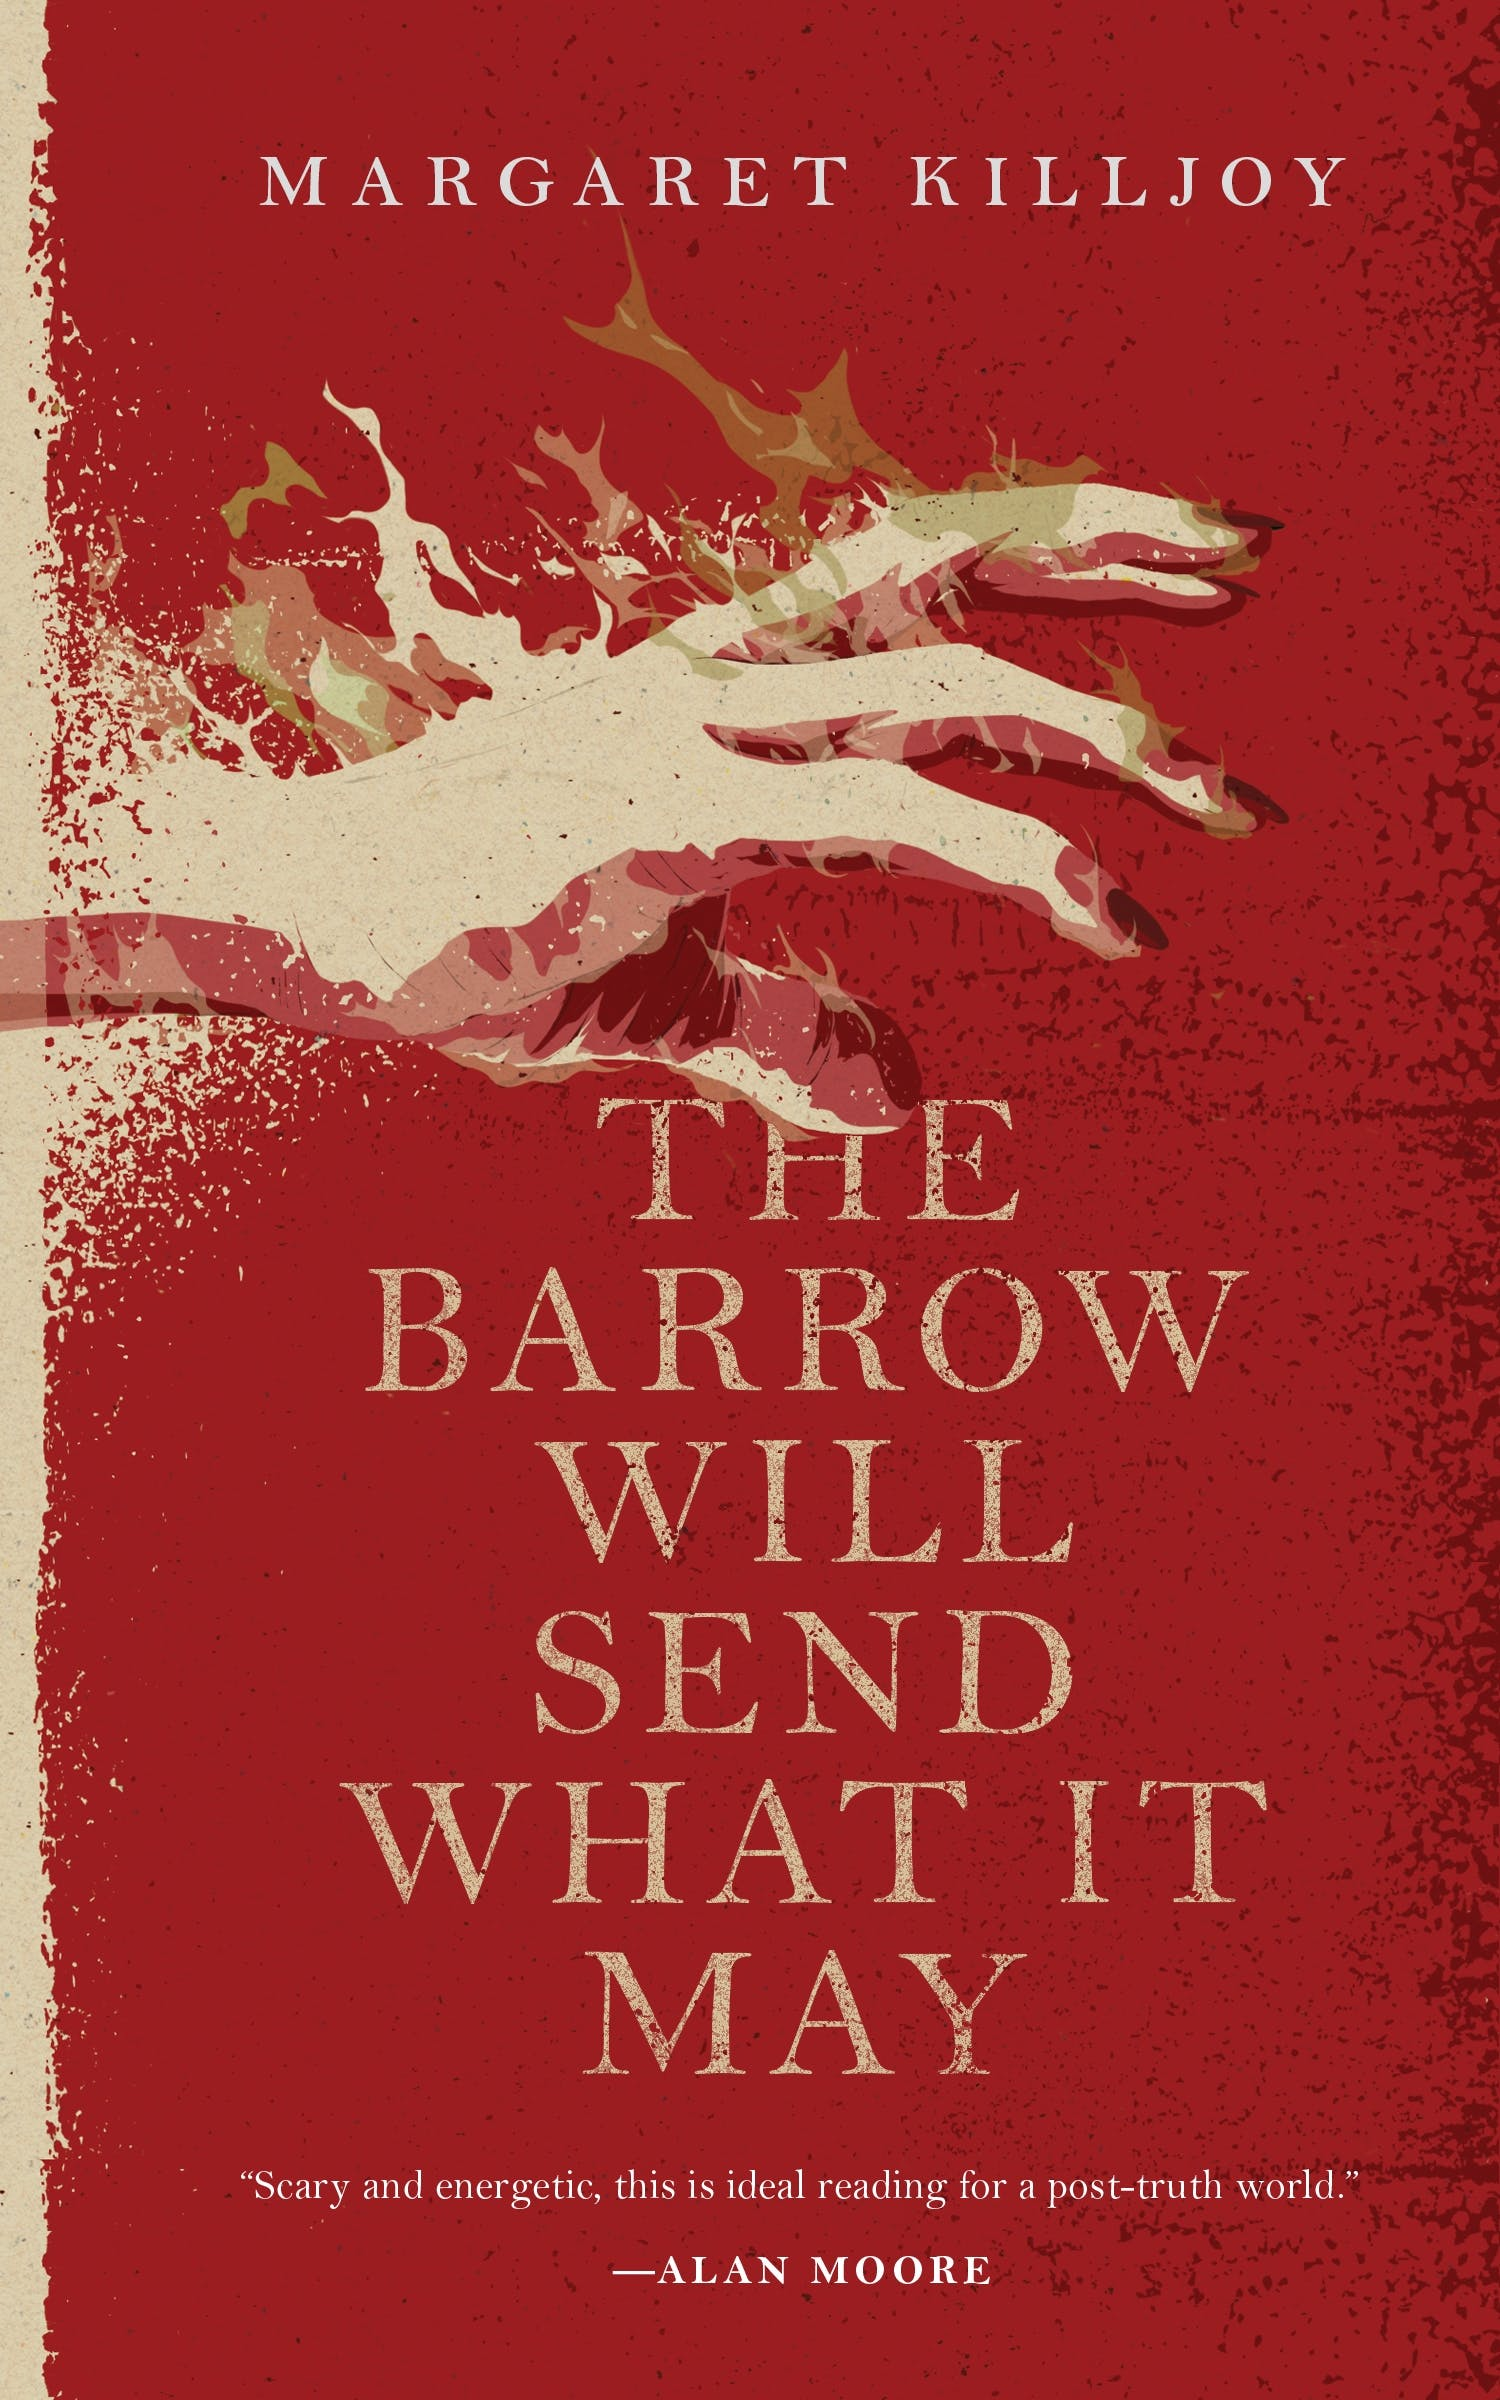 Image of The Barrow Will Send What it May